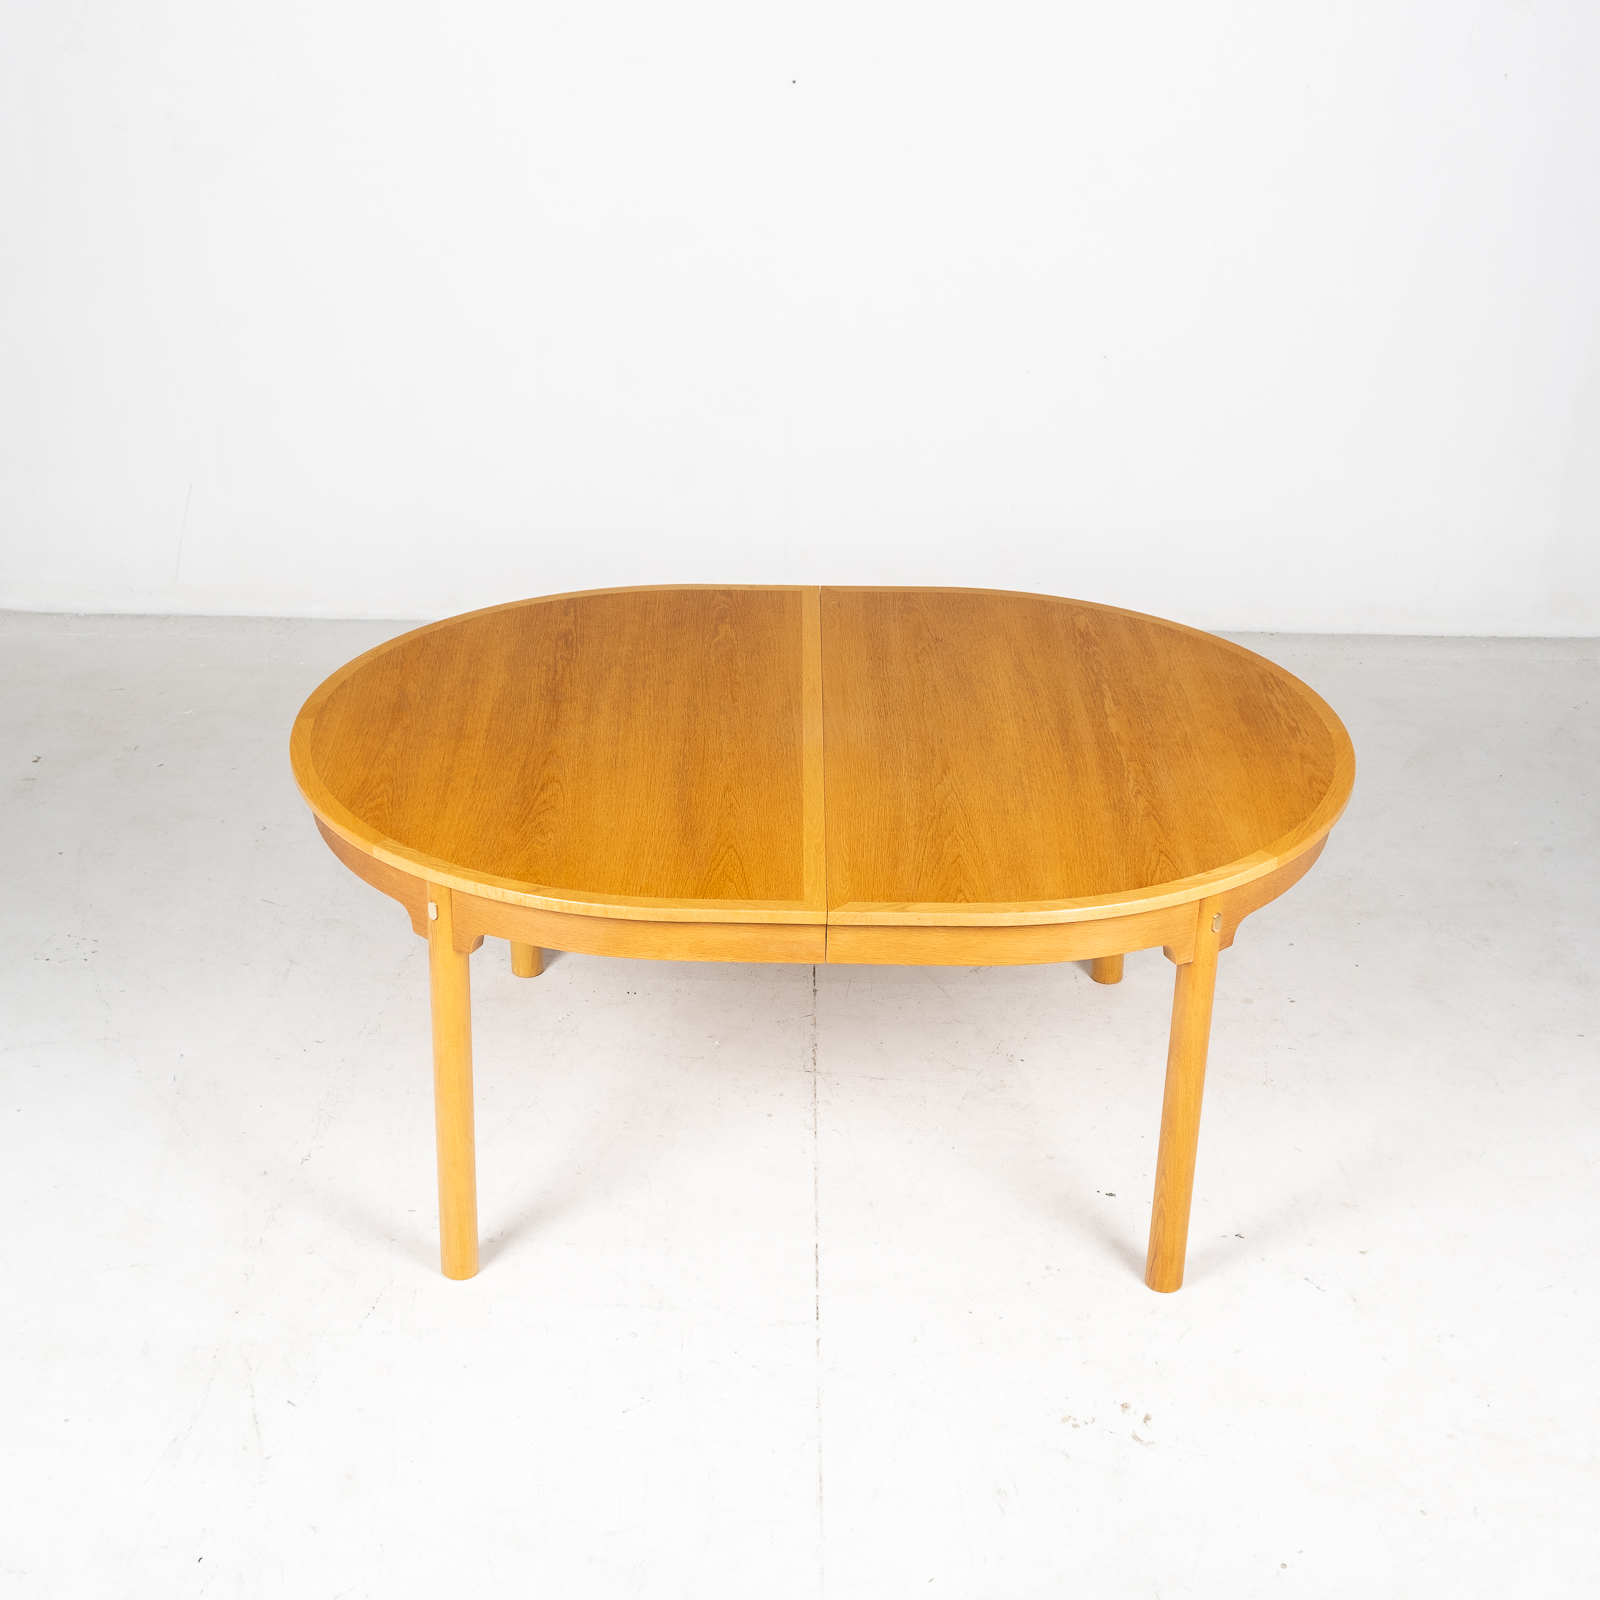 Oresund Round Dining Table By Borge Mogensen For Karl Andersson & Soner In Oak With One Extension Leaf, 1960s, Denmark6